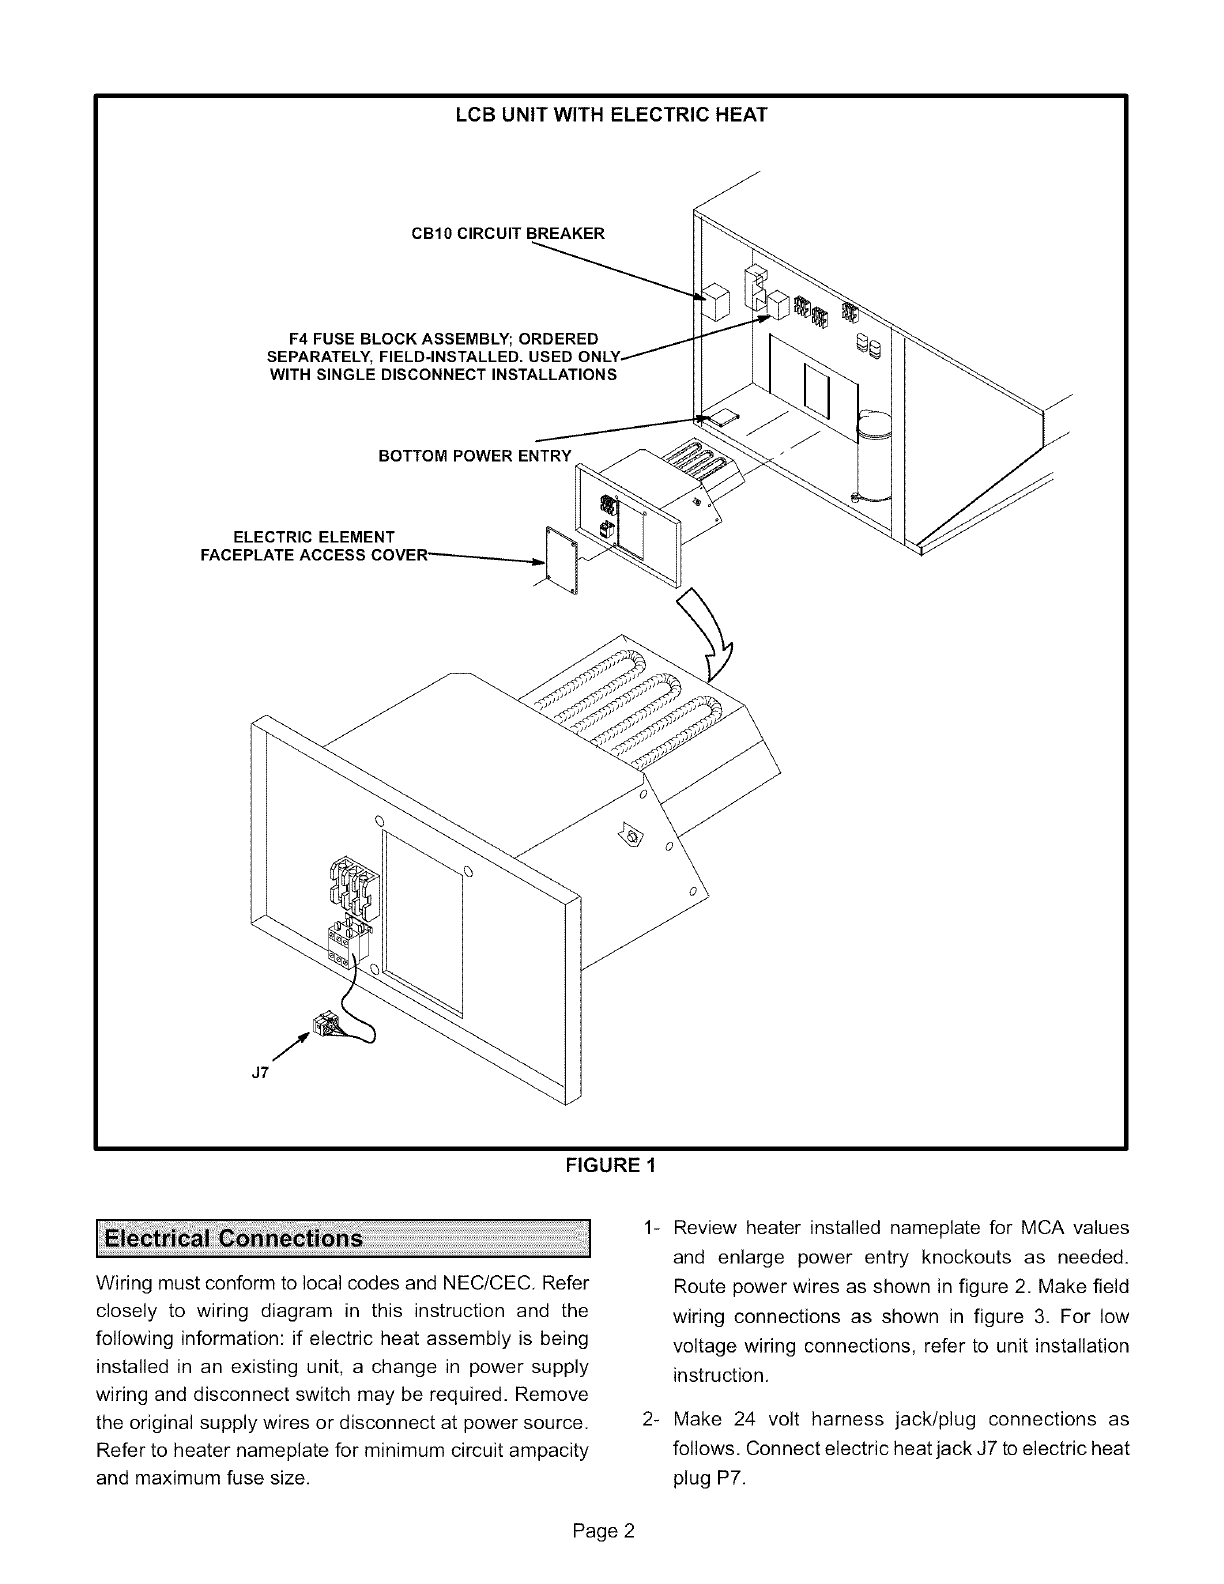 Lennox Air Handler Auxiliary Heater Kit Manual L0805589 Wiring Diagram For Electric Heat